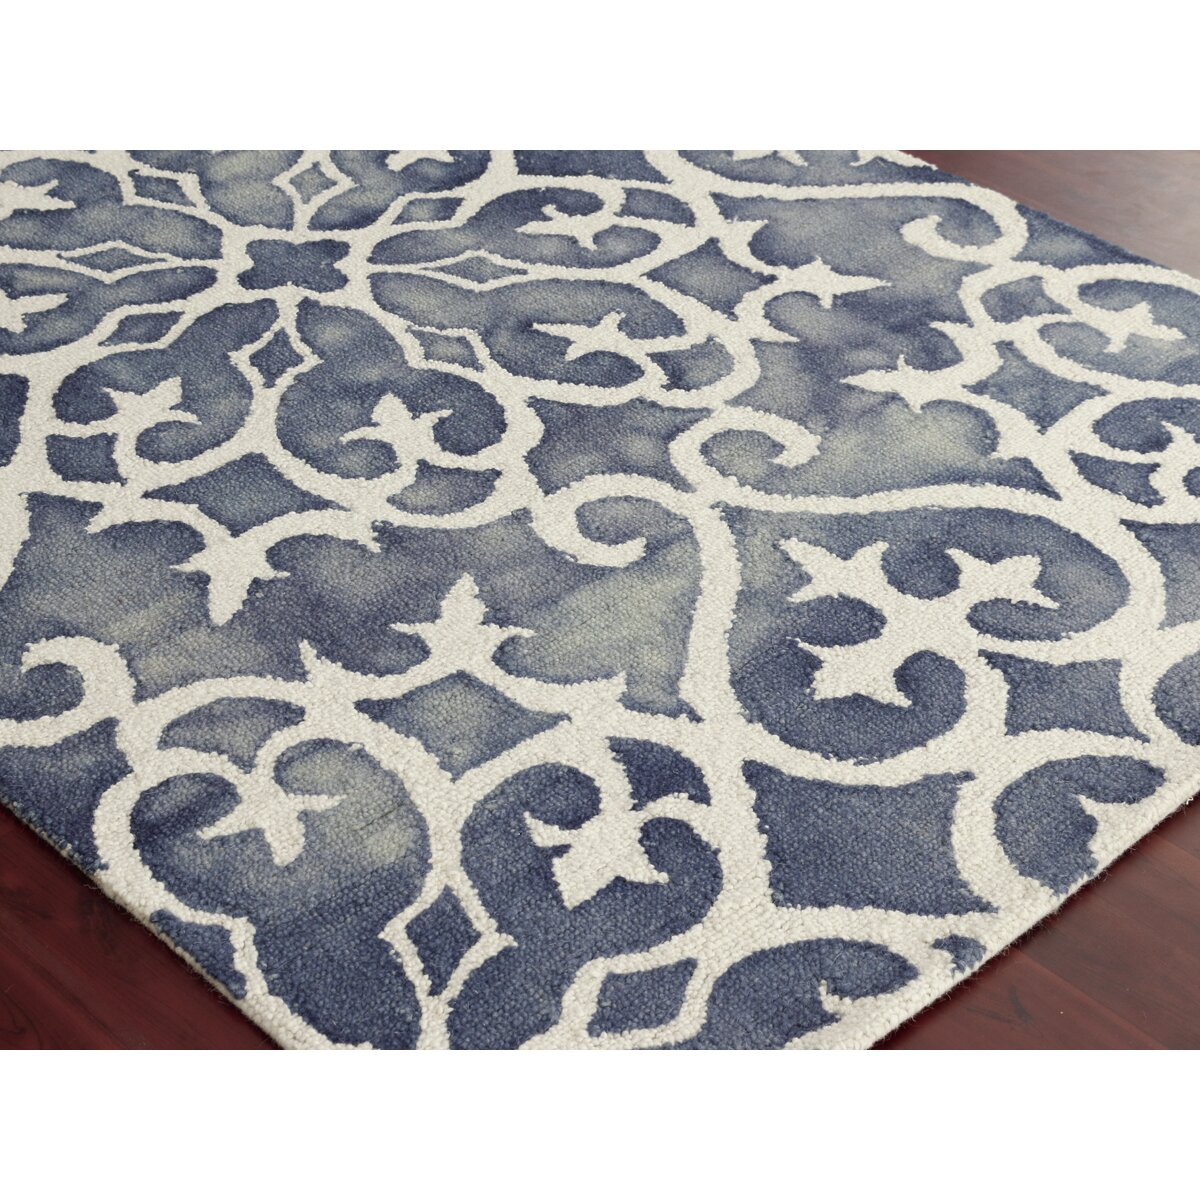 Amer Rugs Blue White Area Rug Amp Reviews Wayfair